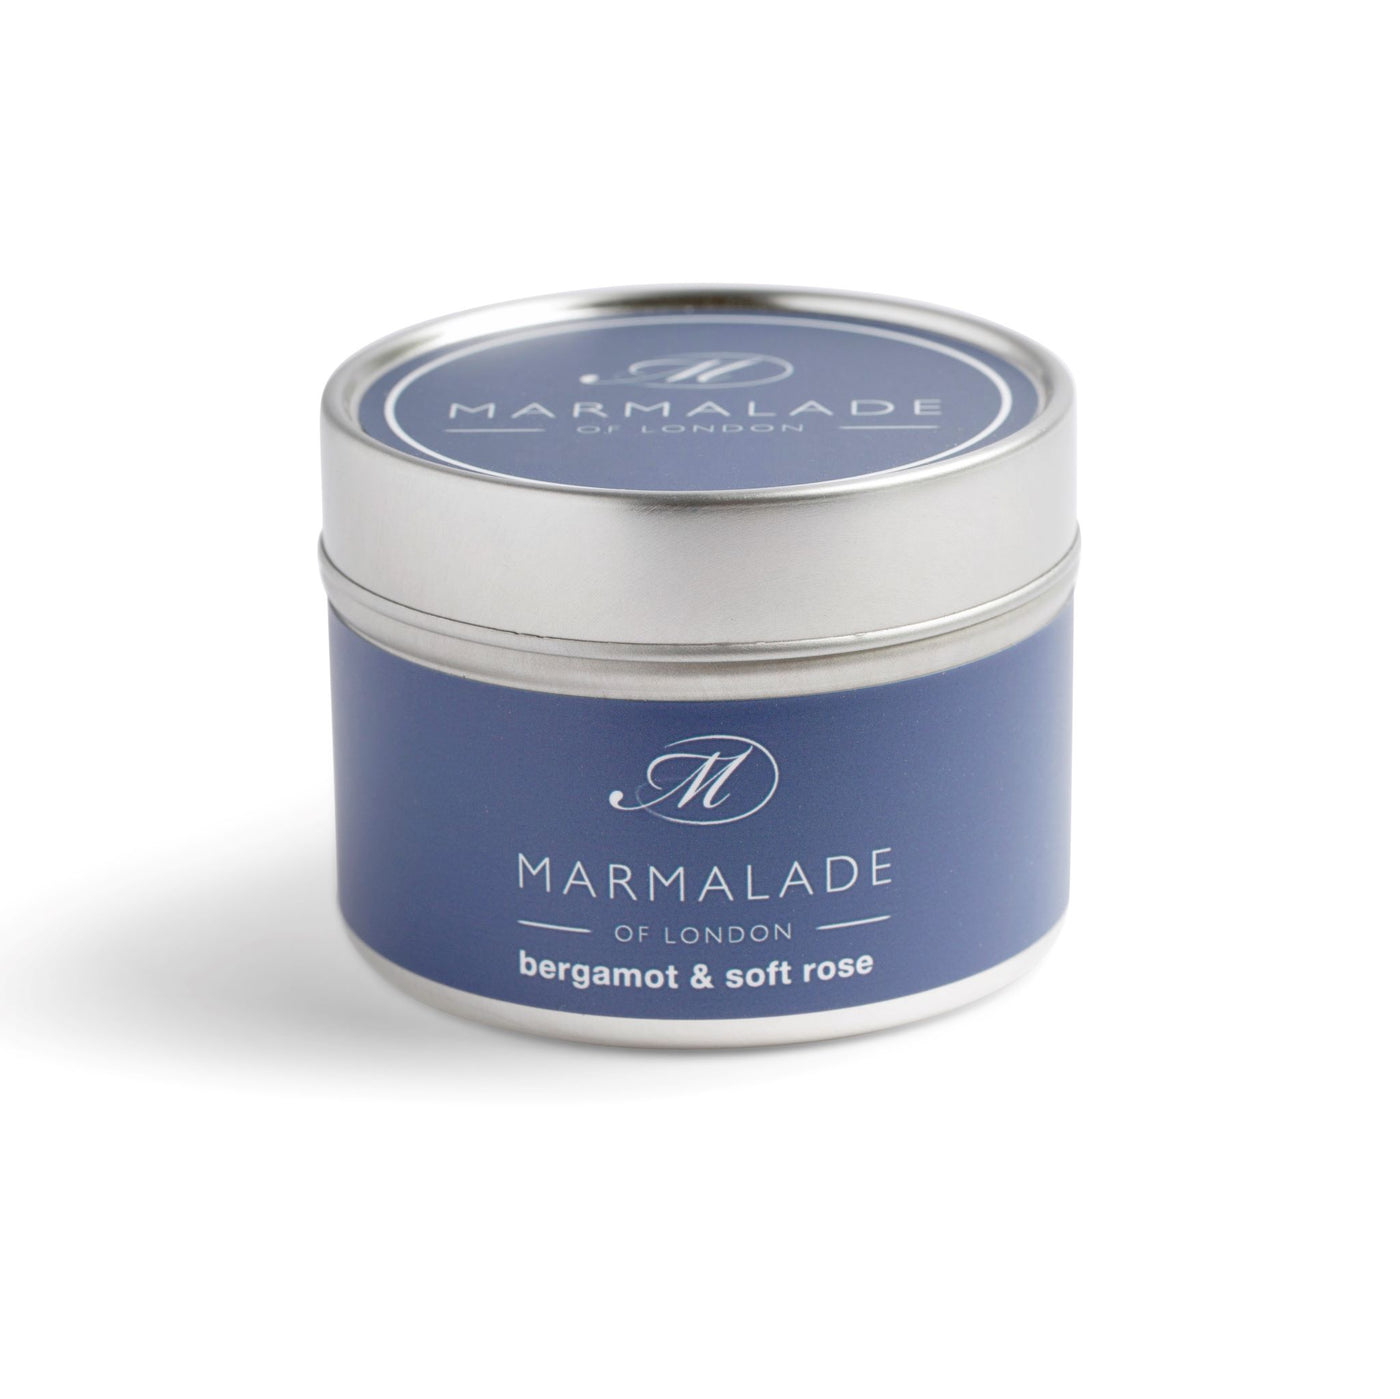 Marmalade Bergamot & Soft Rose Small tin candle